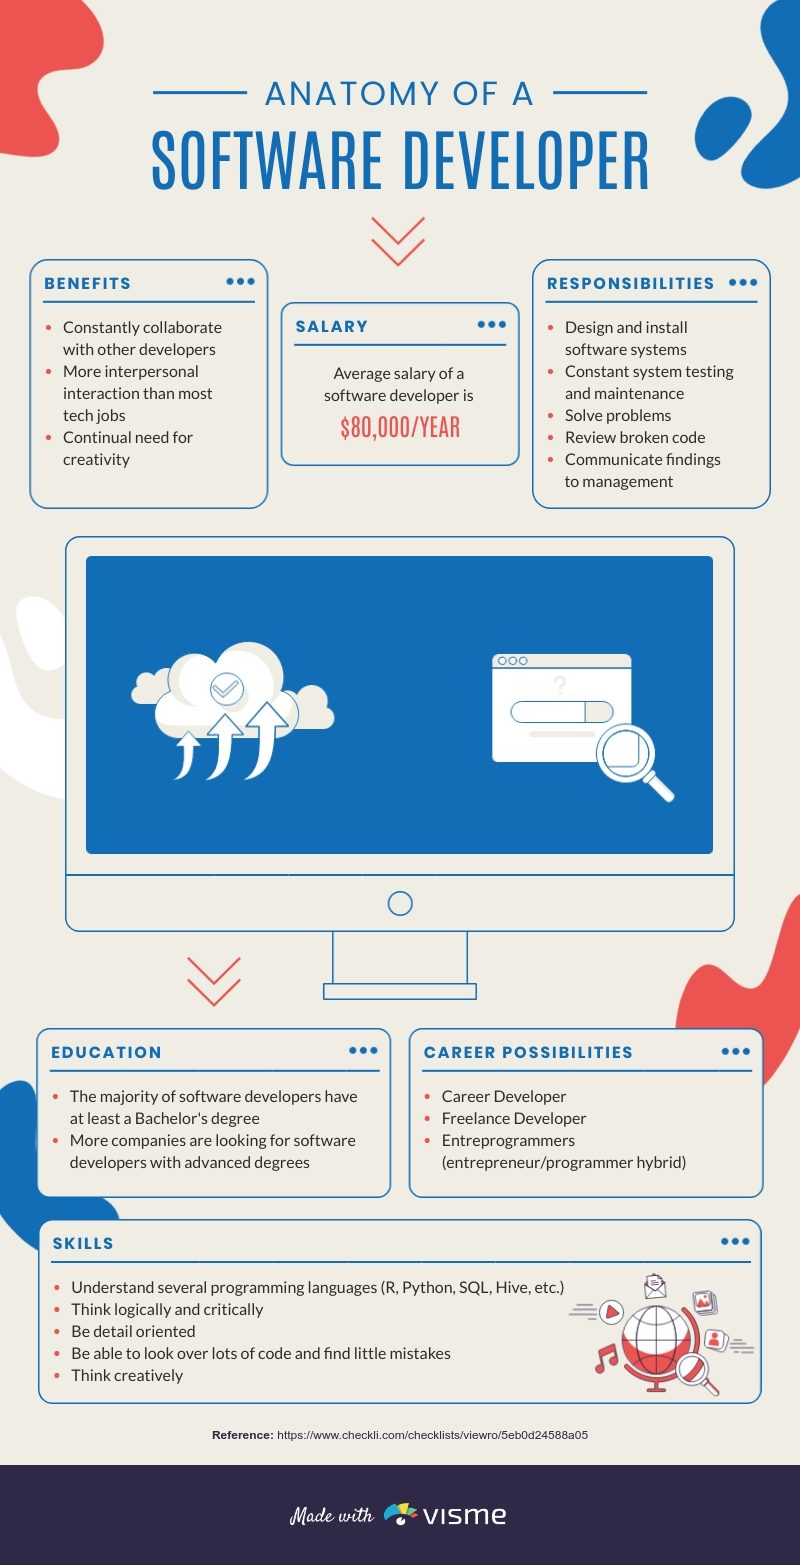 Anatomy of a Software Developer - Infographic Template